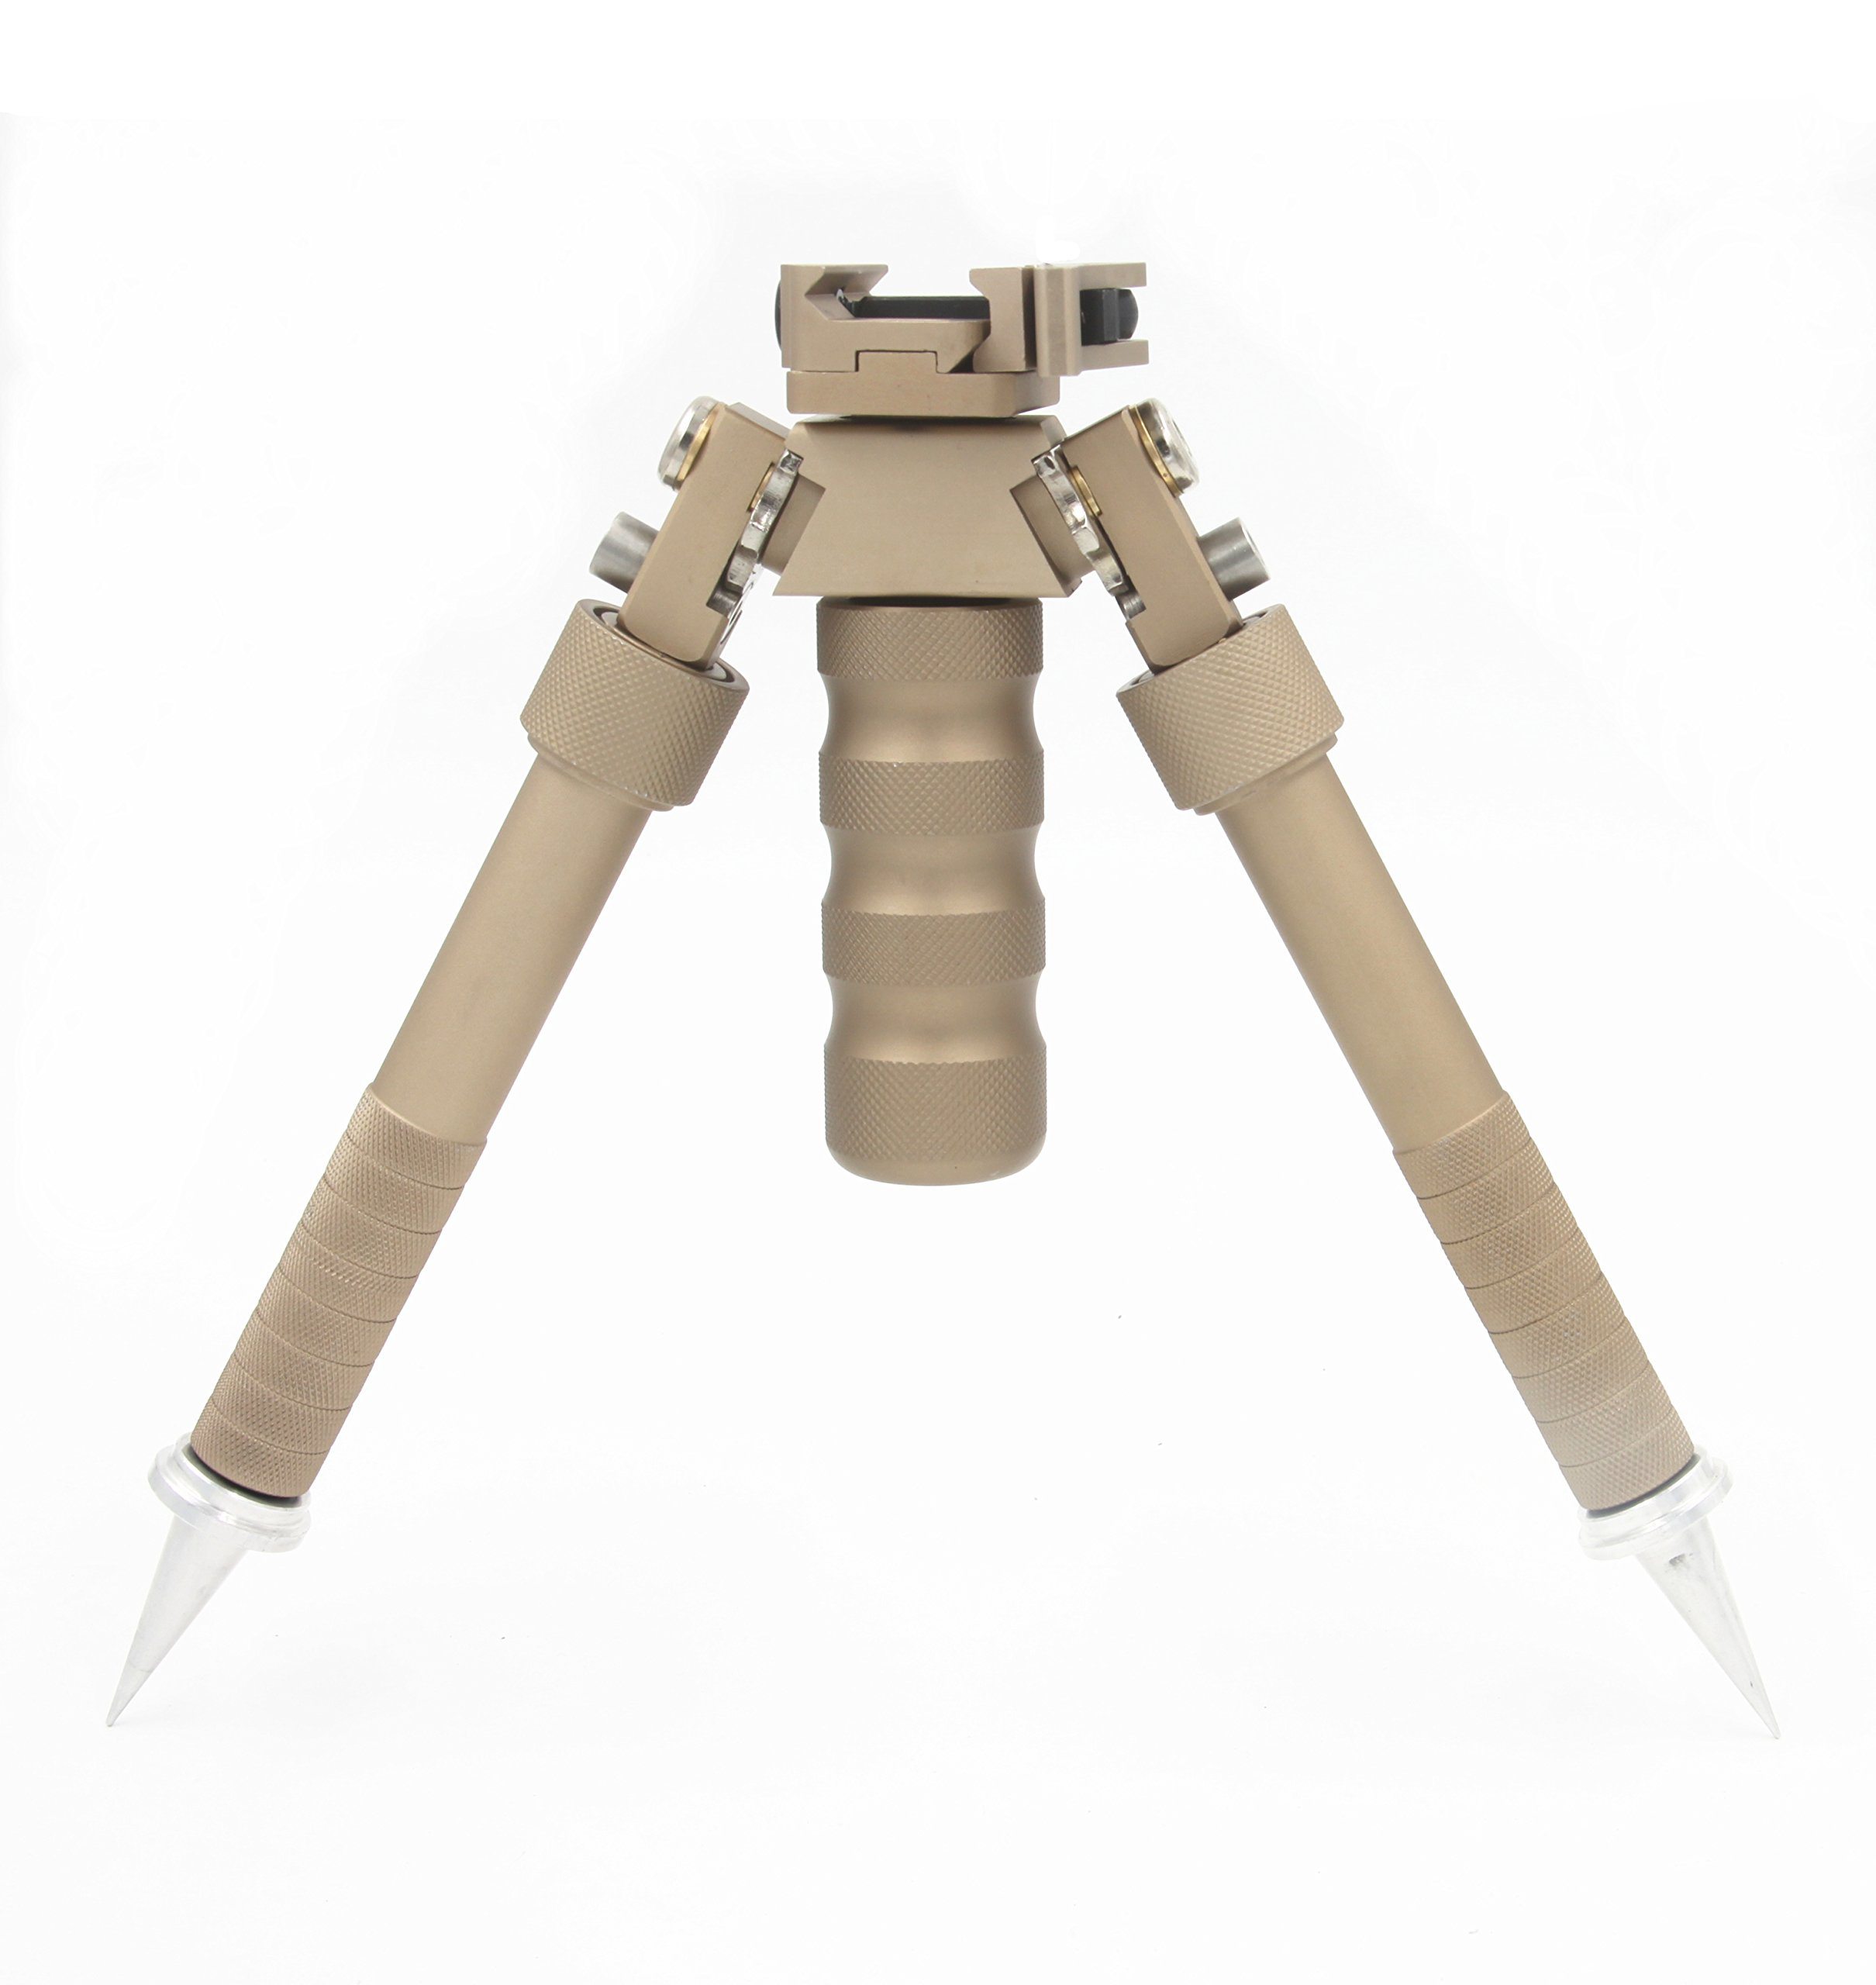 JINSE Bipod Picatinny Rail Quick Release Folding Swivel Adjustable 6.5-9 Inches with Spikes (Brown)